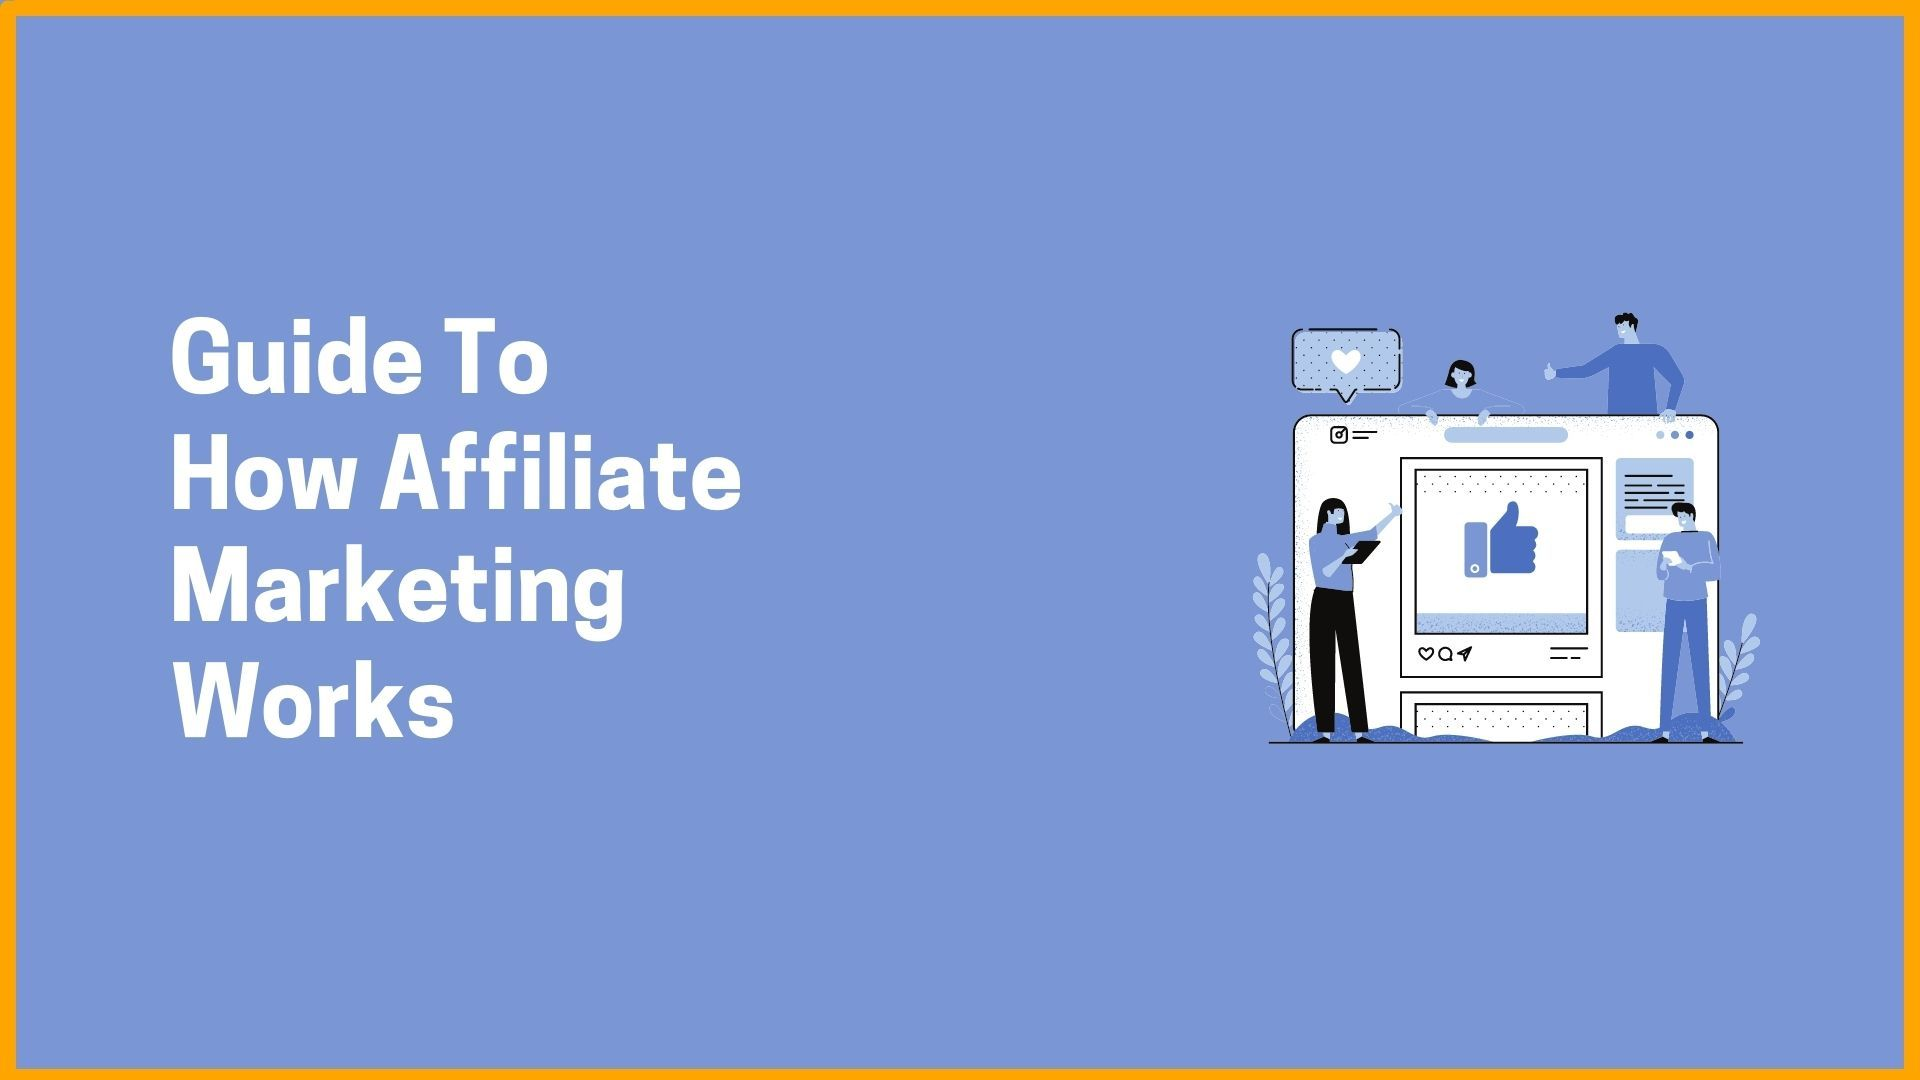 Guide To How Affiliate Marketing Works